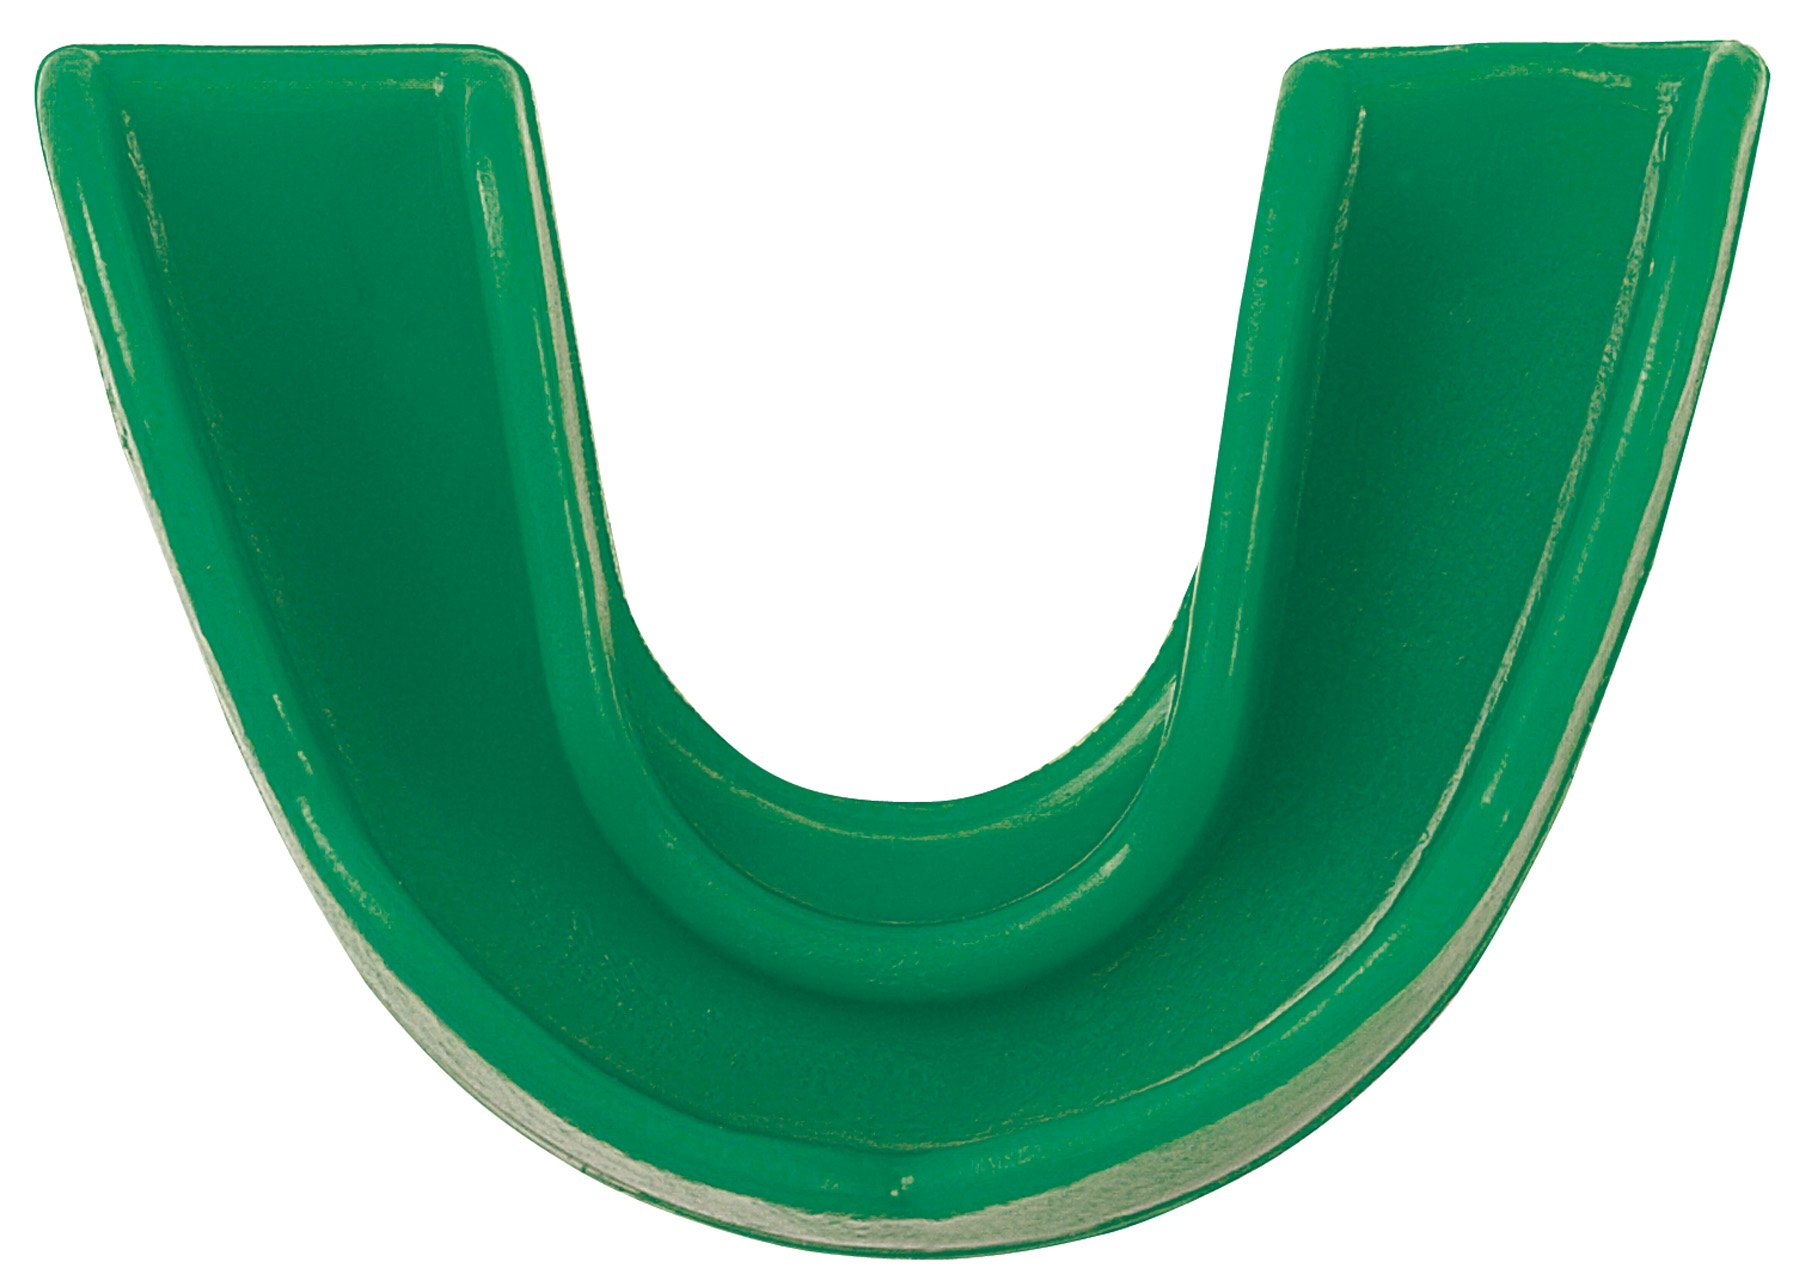 Vettex Multi-Sport Mouthguard (Box of 100), Kelly Green by Markwort